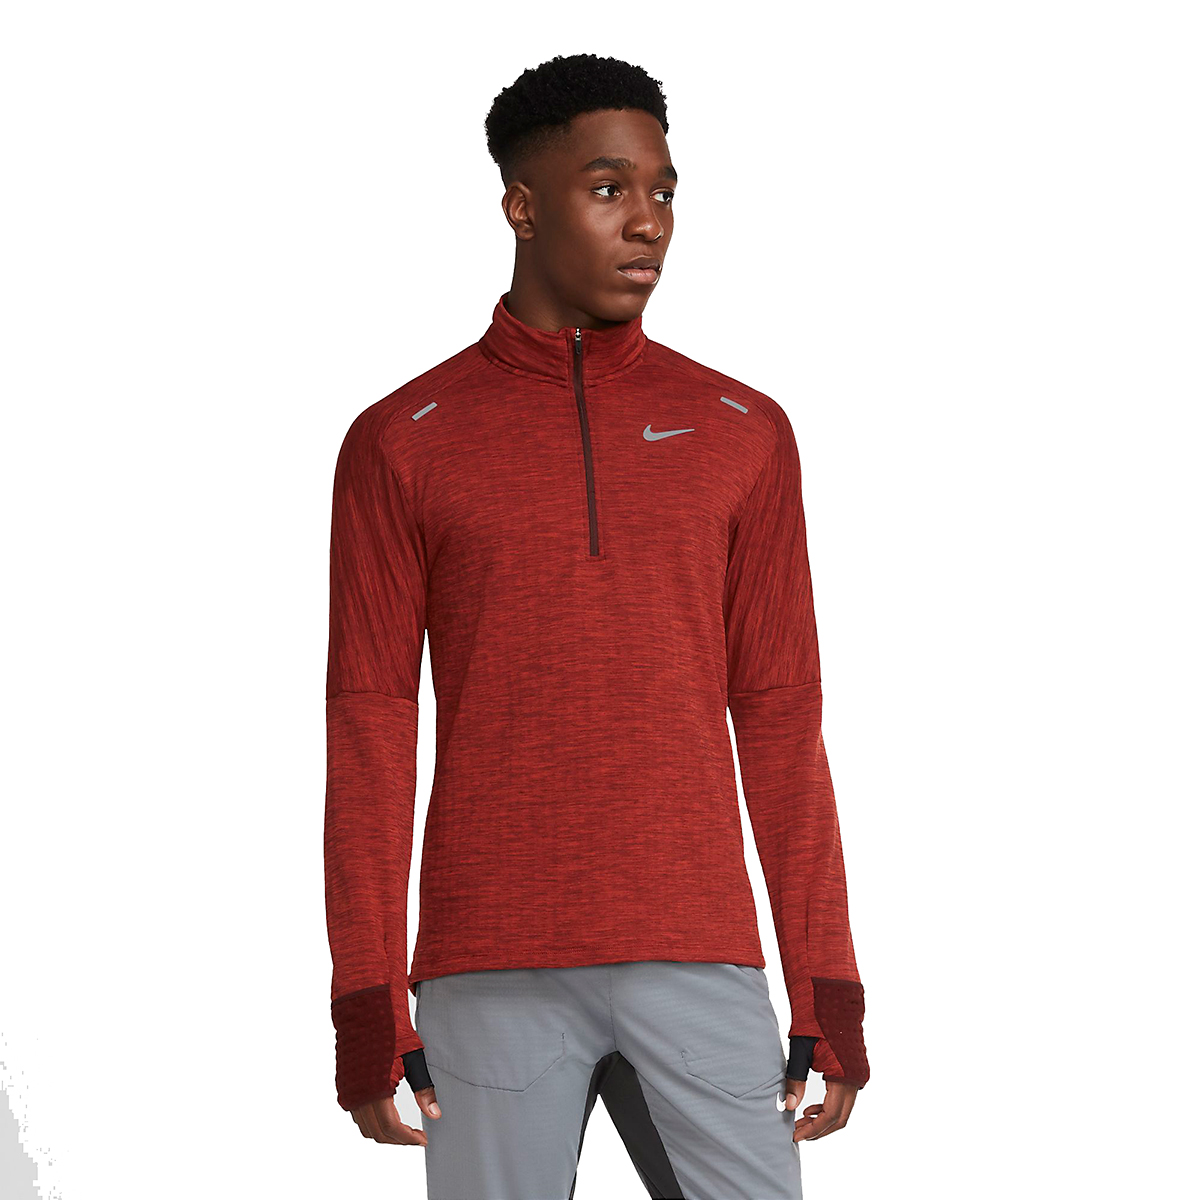 Men's Nike Sphere Half Zip Long Sleeve Shirt - Color: Mystic Dates/Heather/Chile Red - Size: S, Mystic Dates/Heather/Chile Red, large, image 1